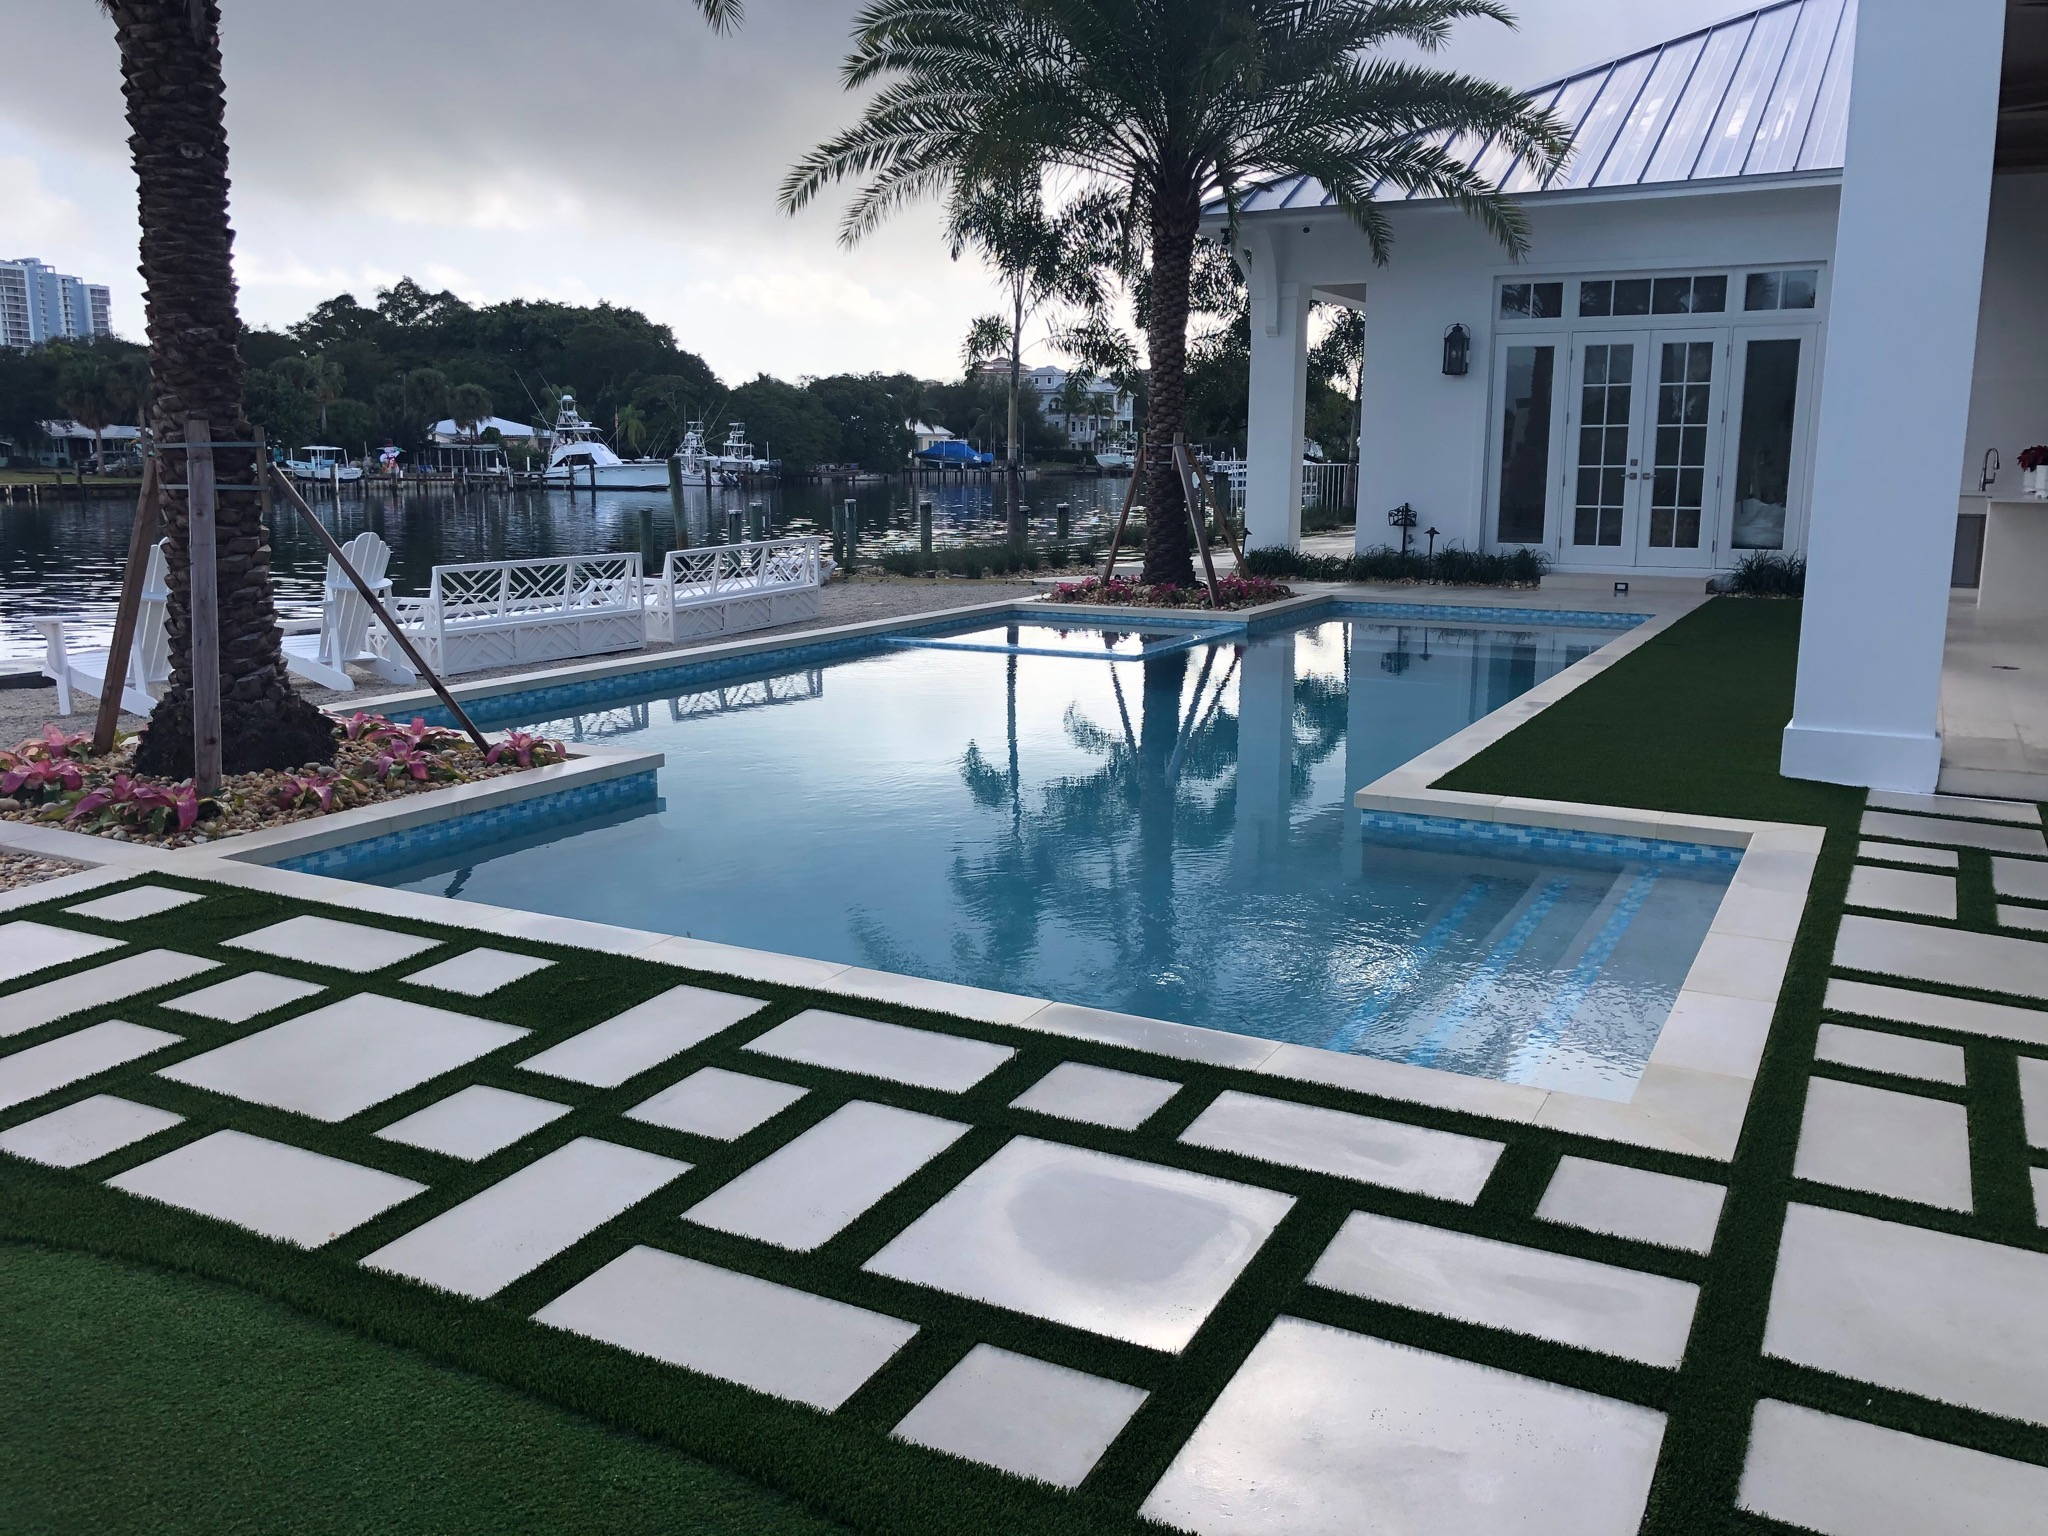 rhr pools of jupiter fl modern shaped pool with sunken spa overlooking the water